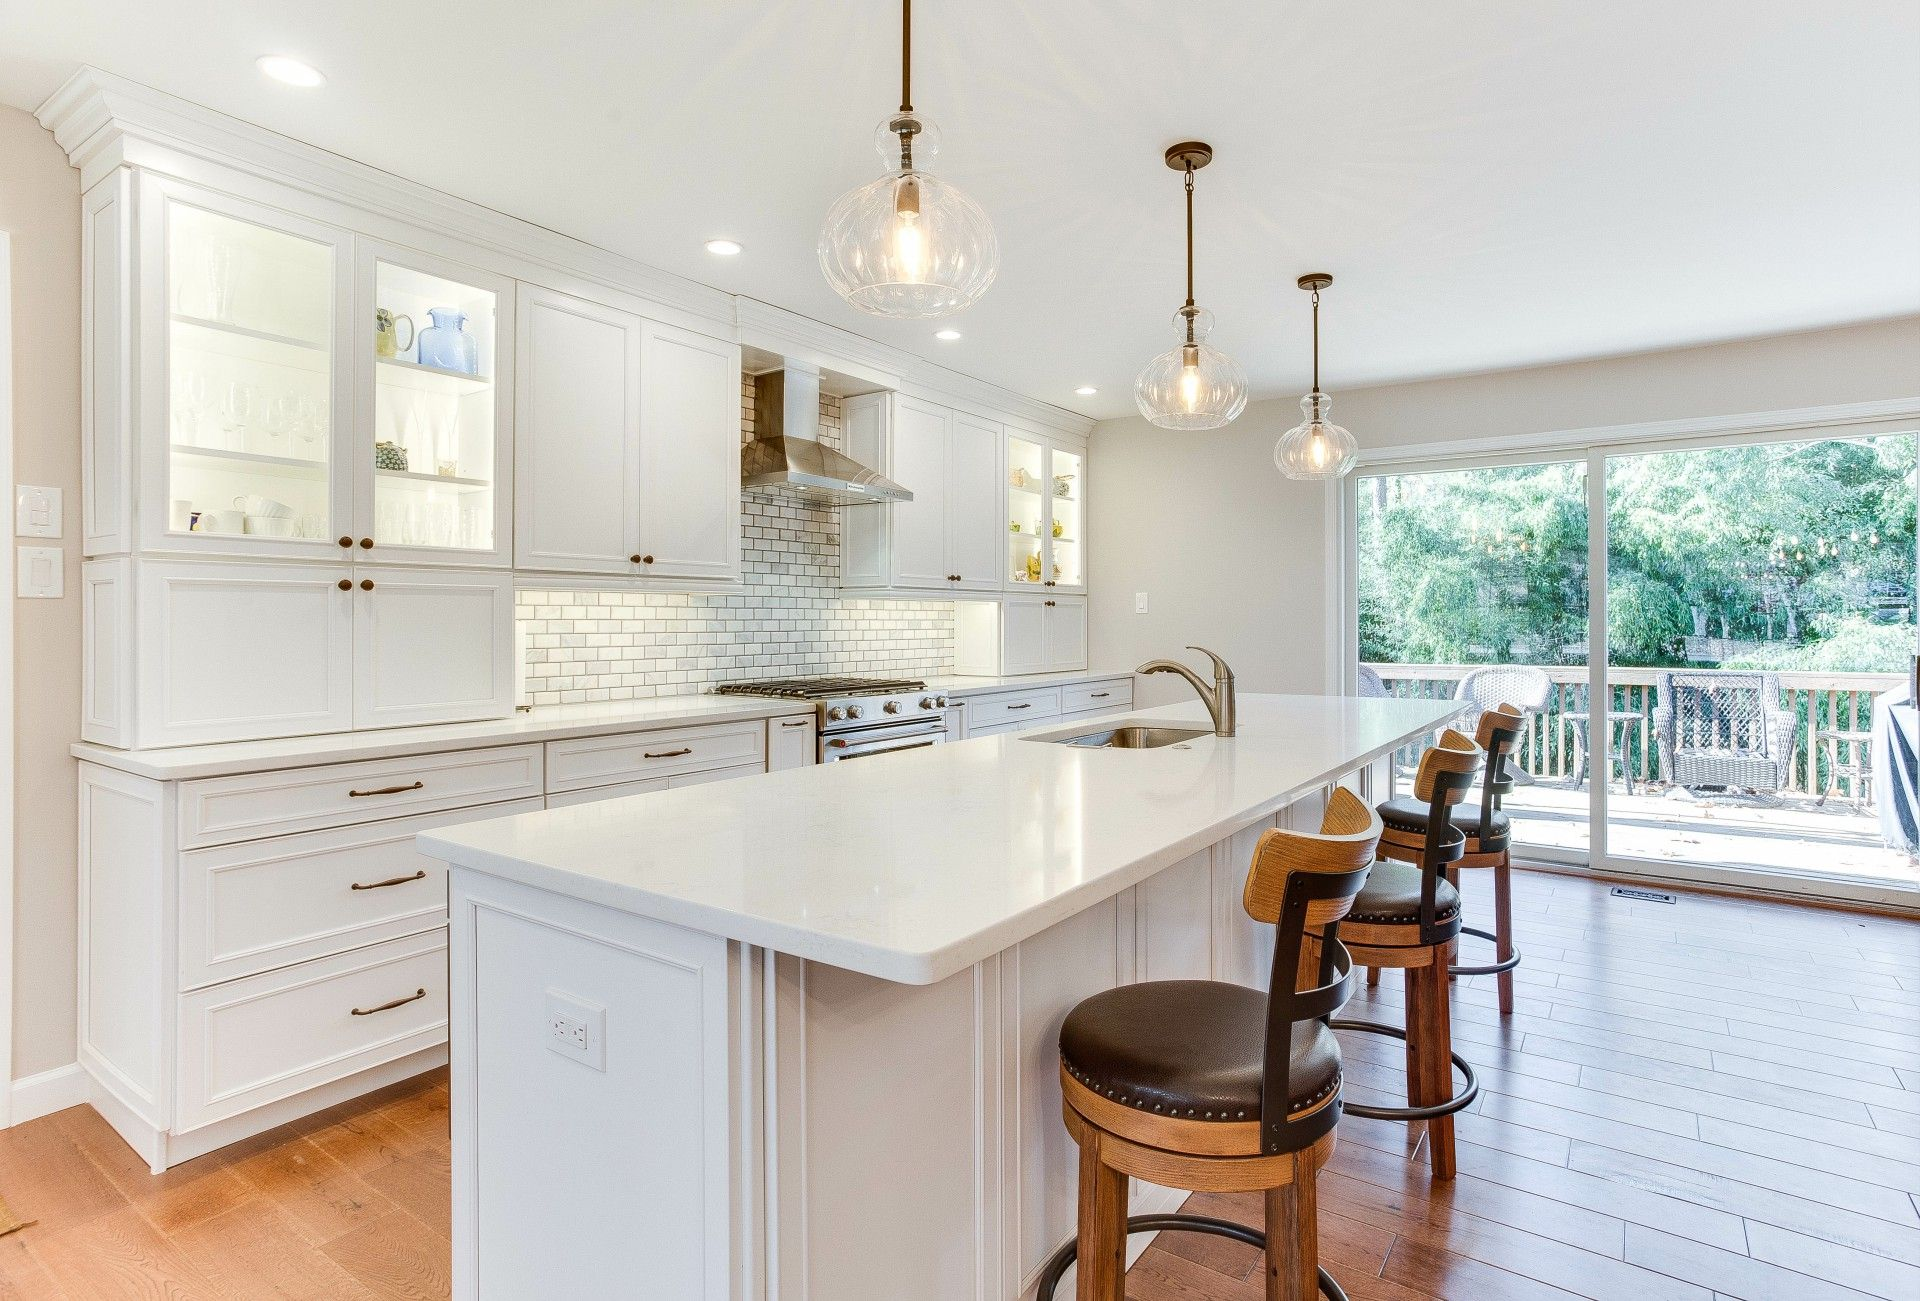 Kitchen Space Kitchen Remodeling Ea Home Design Renovation Kitchen Remodeling Ideas Home Renovation Kitchen Remodel Kitchen Design Kitchen